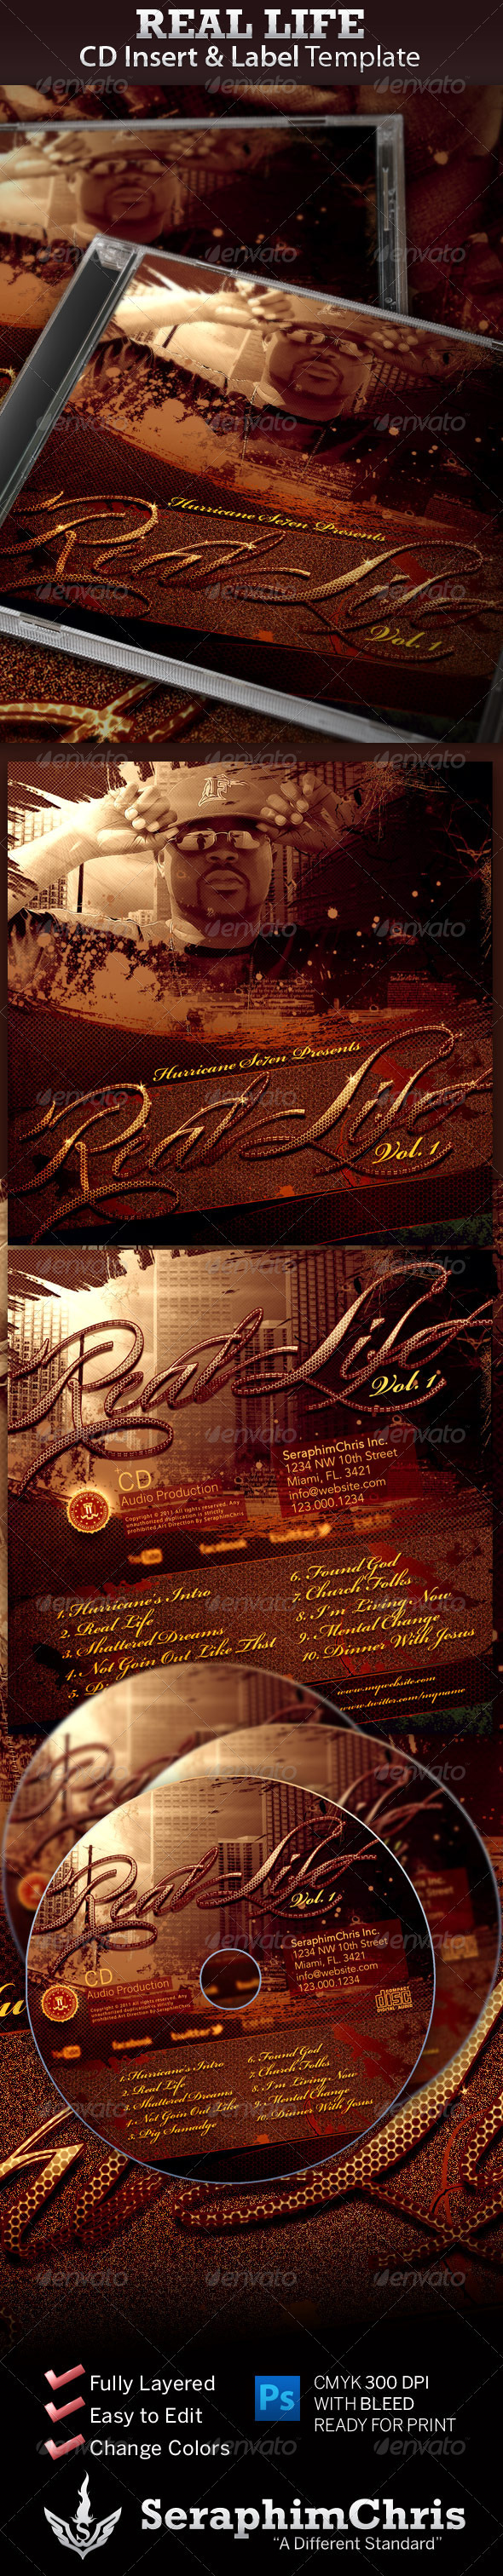 Graphic River Real Life CD Insert and Label Print Templates -  CD & DVD artwork 728078